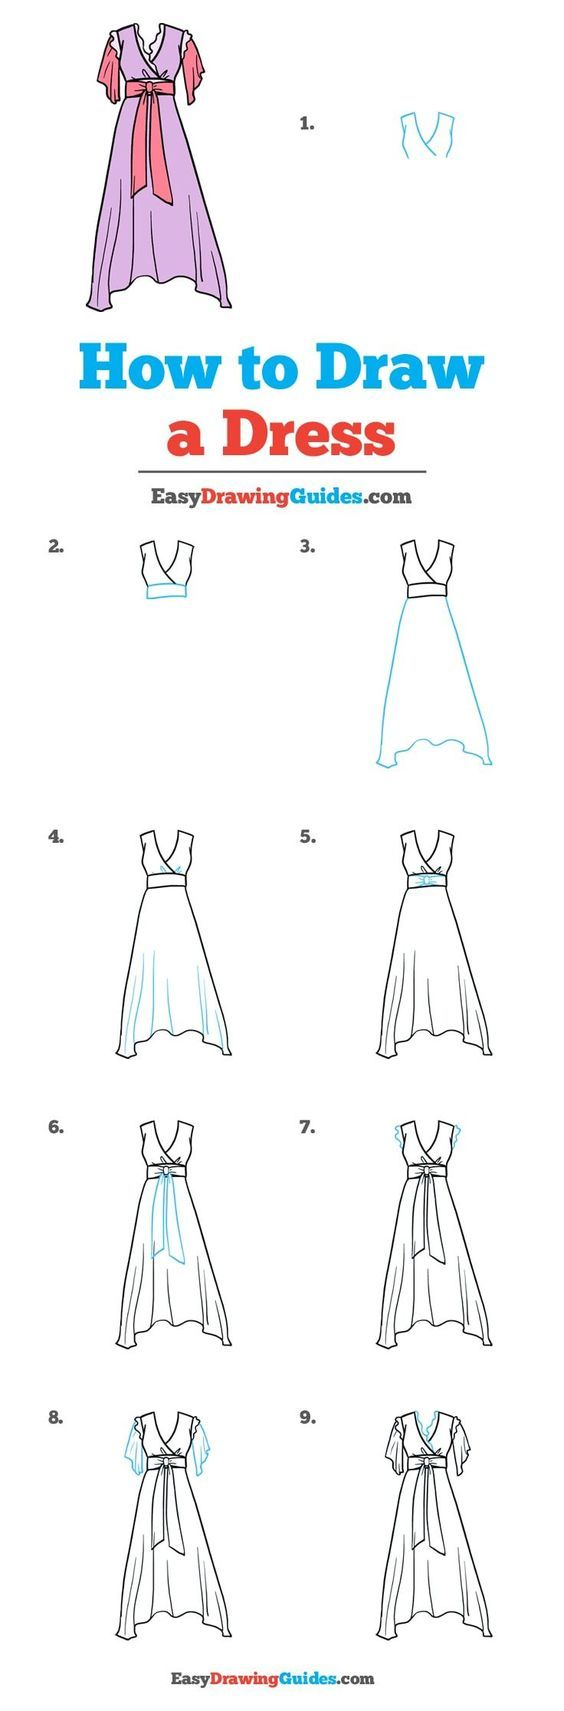 How to Draw a Dress - Really Easy Drawing Tutorial